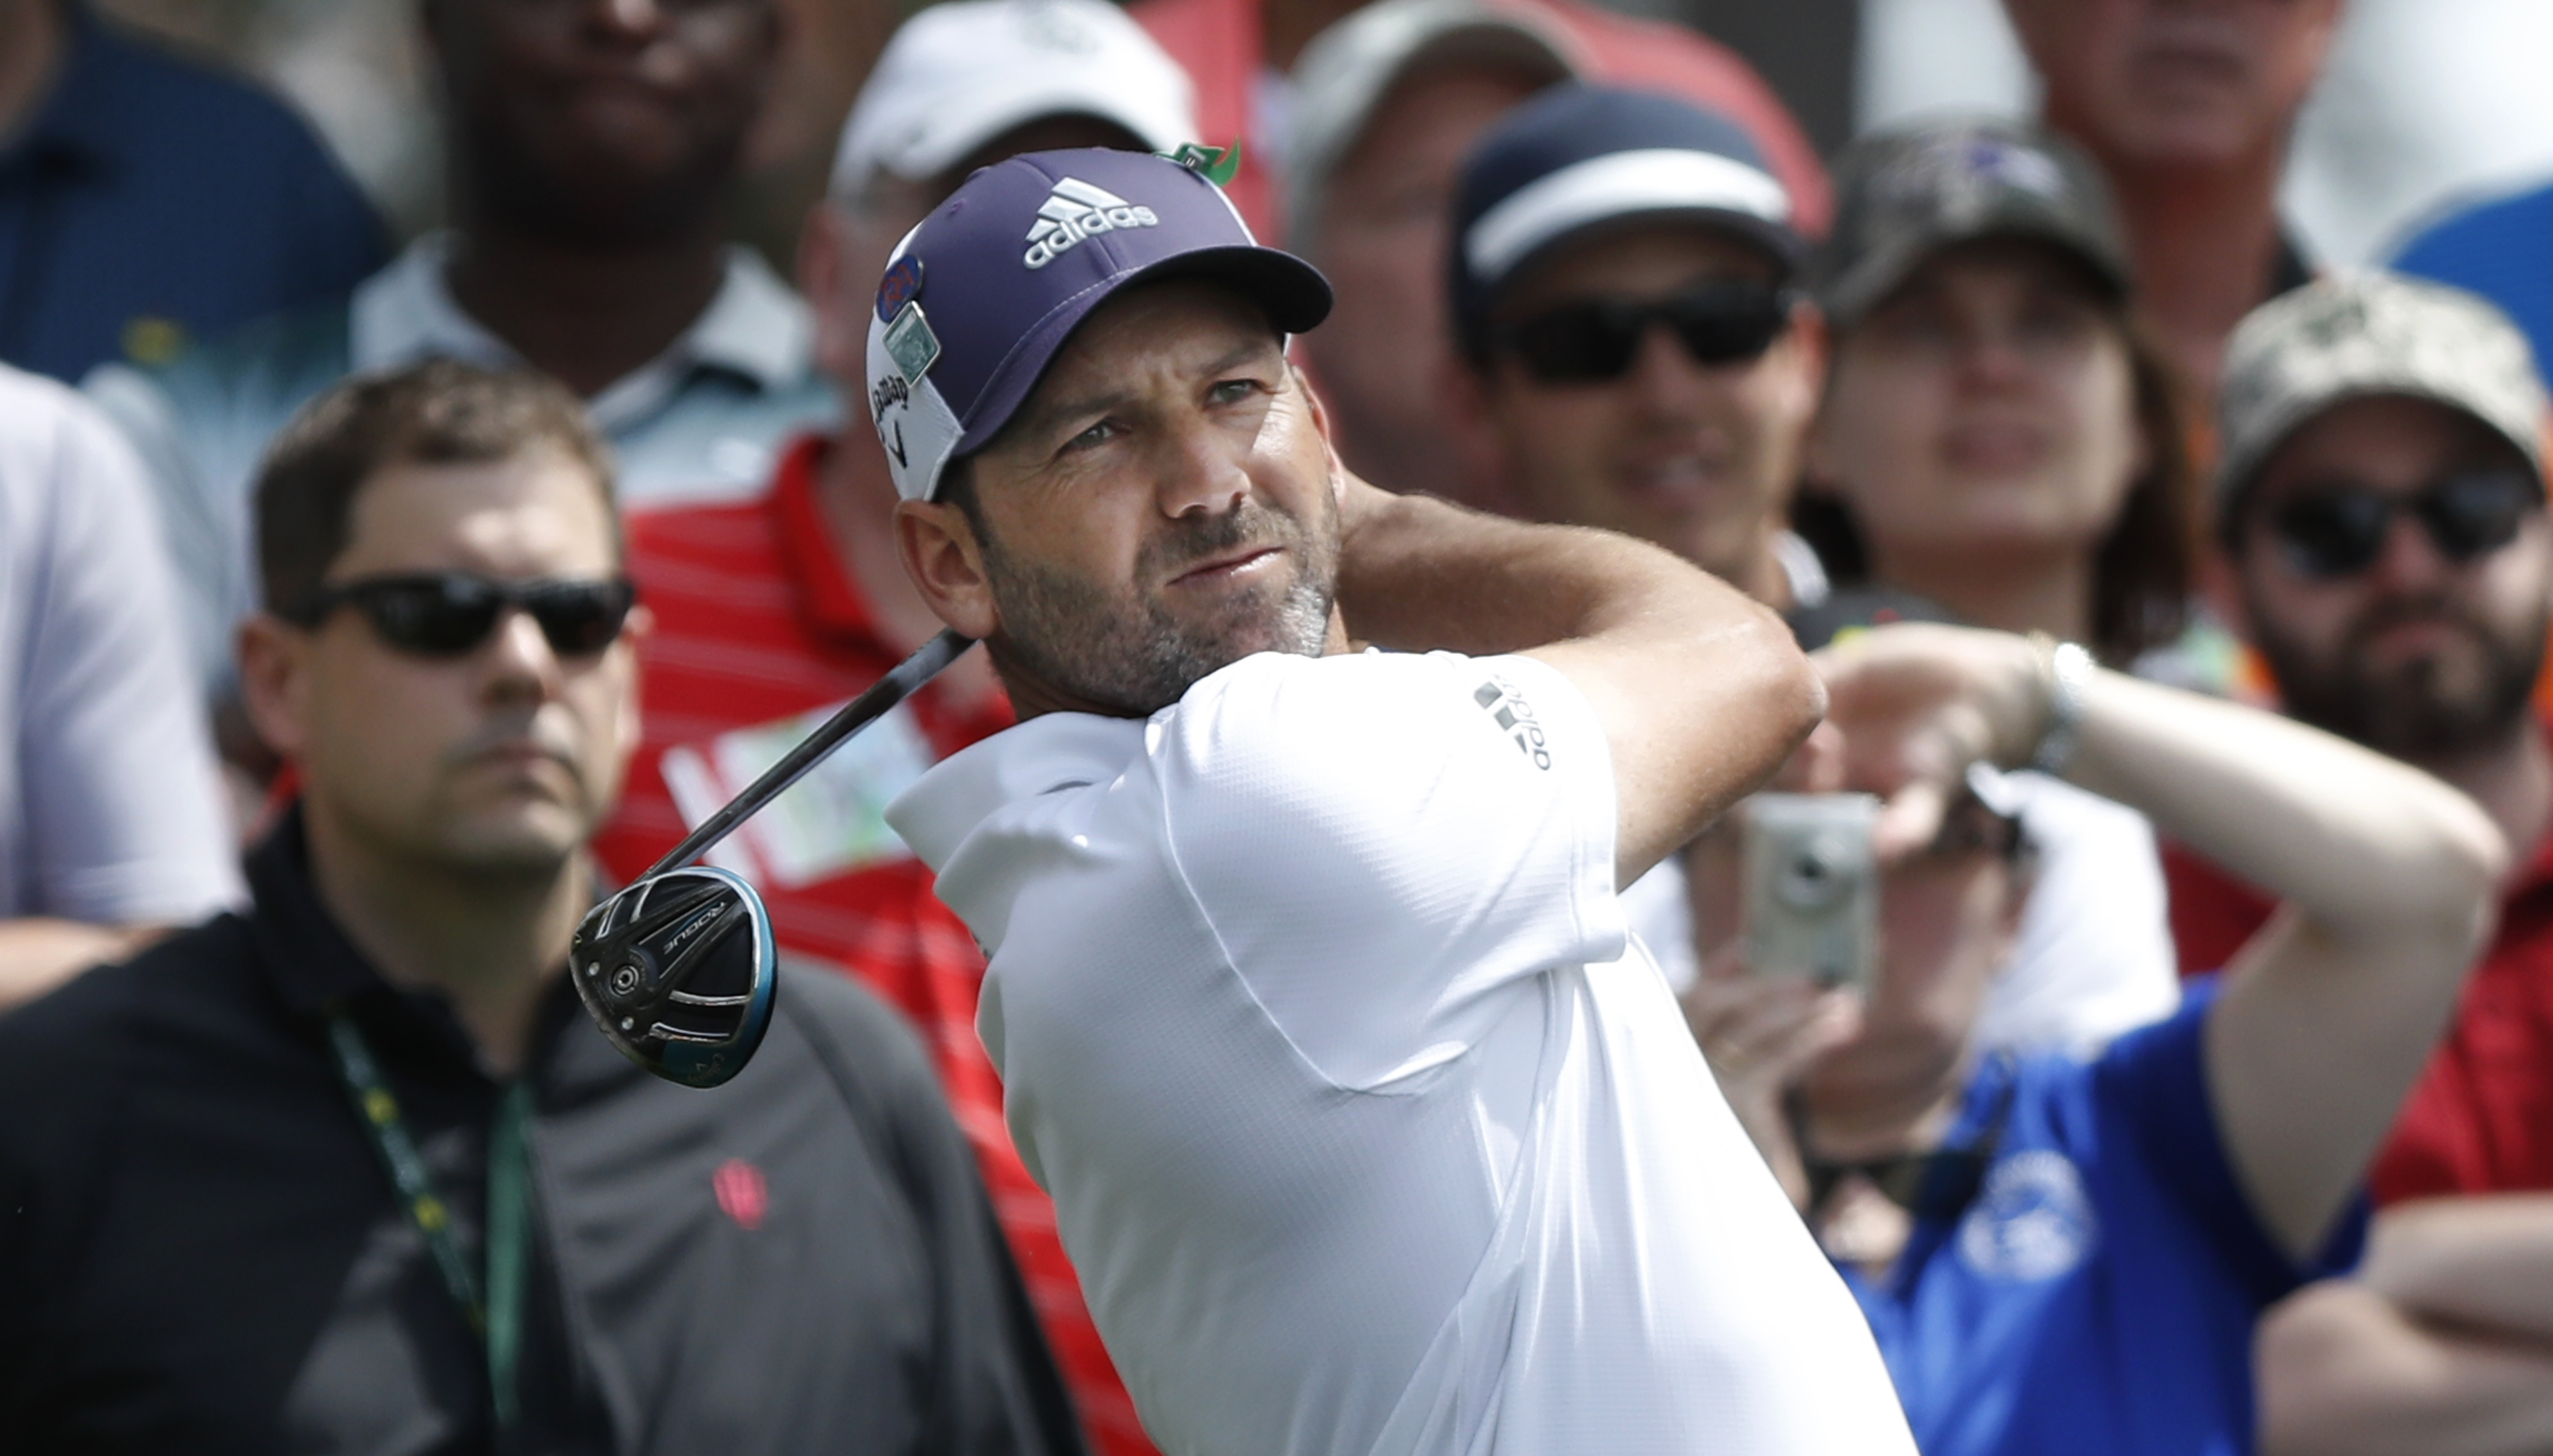 Sergio Garcia prepares to host Champions Dinner at Augusta National